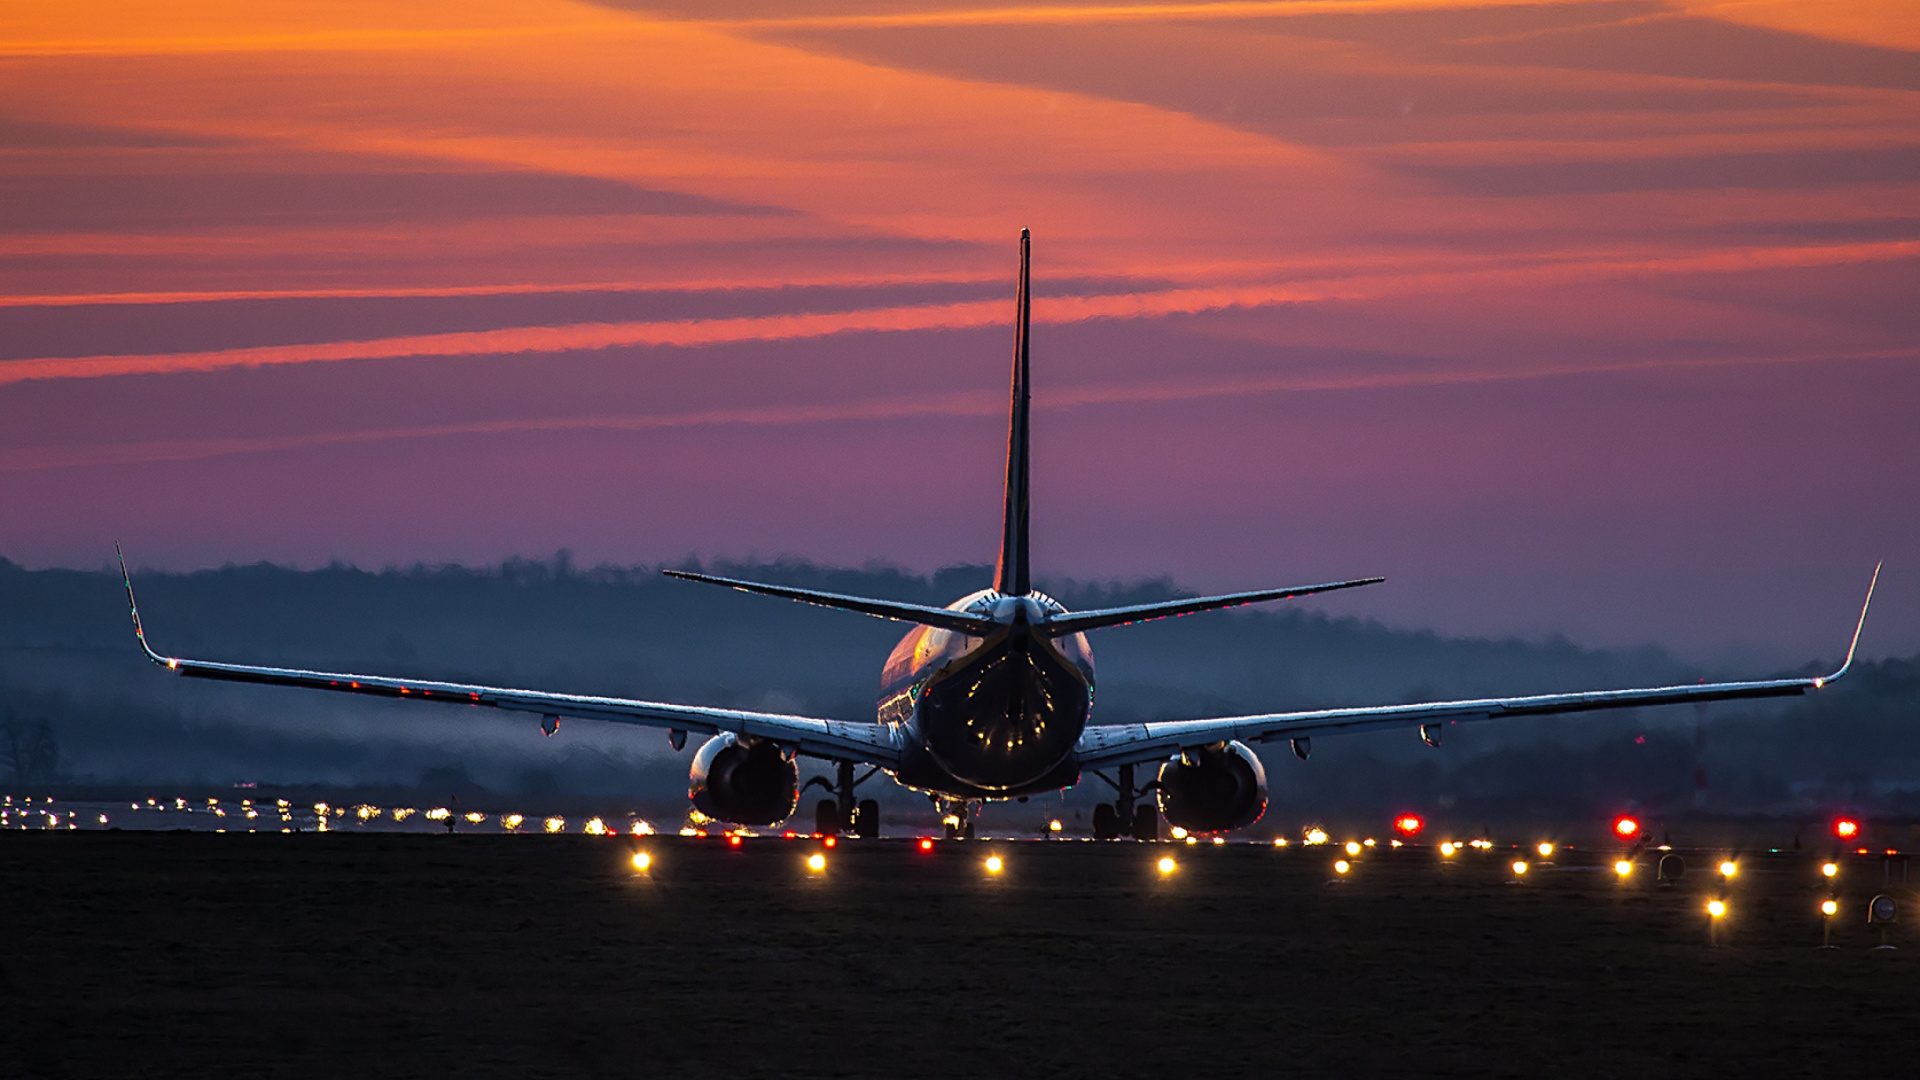 Cute Wallpaper For Home Screen Airbus Airplane Aviation Airport Airbus Evening